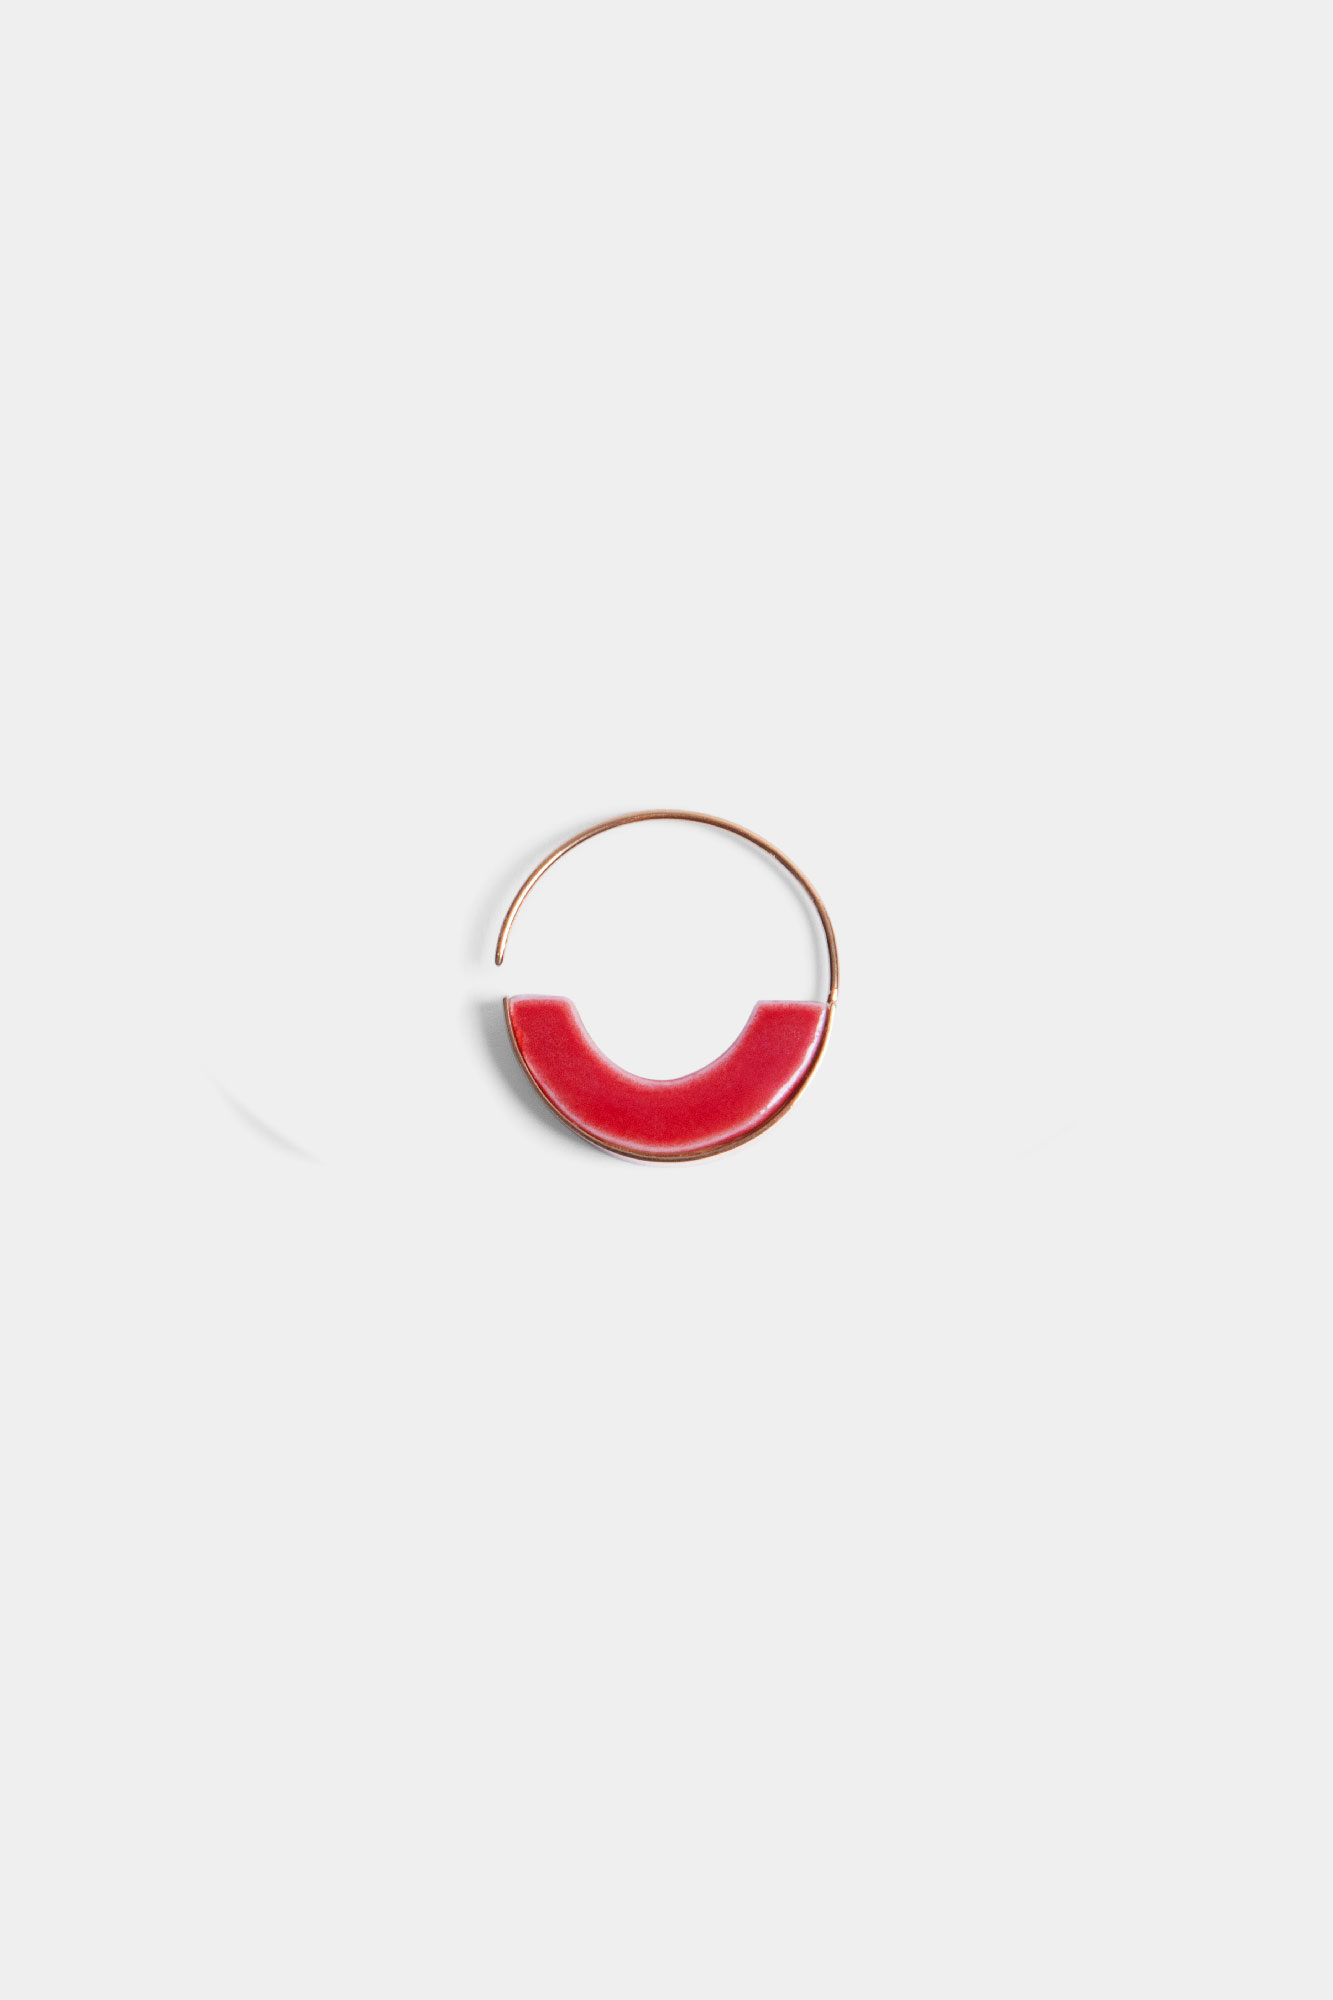 Geometry 2 Red & White Earring